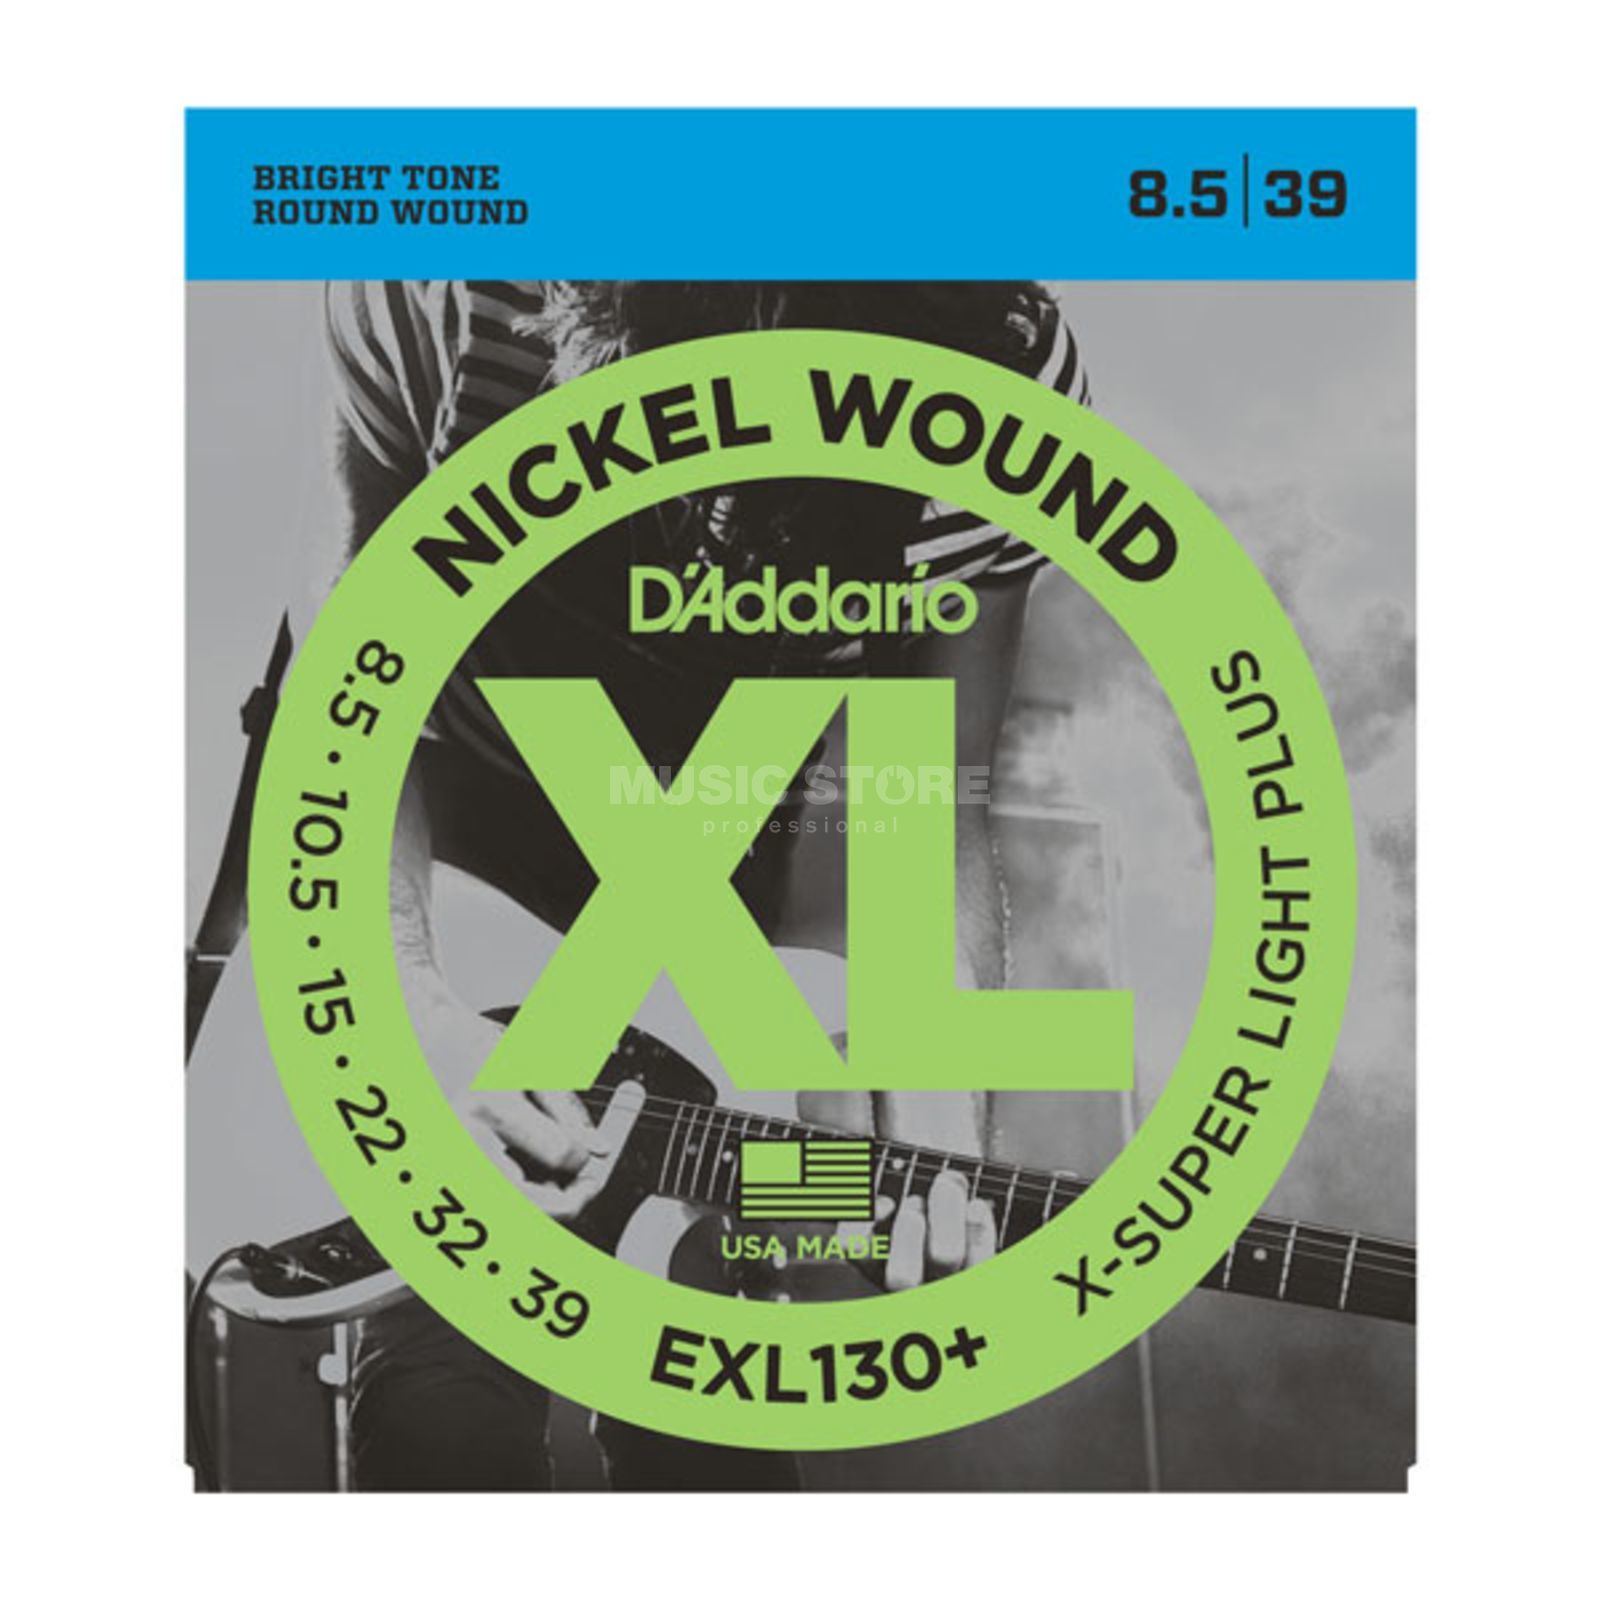 D'Addario E-Guit.Strings EXL130+0085-039 Nickel Wound Product Image